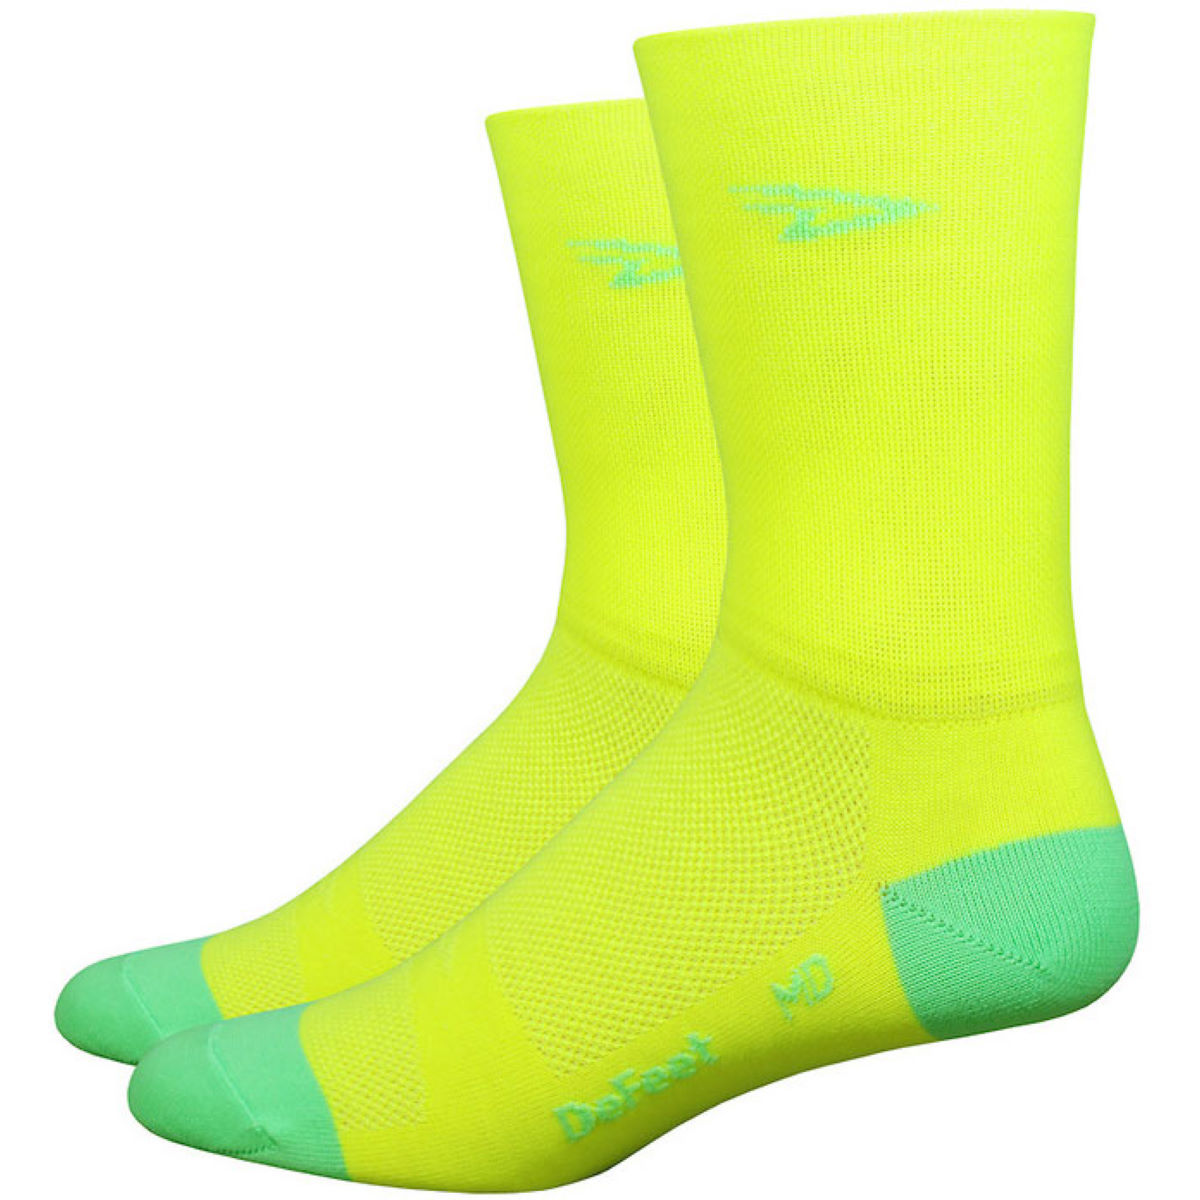 Chaussettes hautes DeFeet Aireator Hi-Vis - S Yellow/Green Chaussettes vélo